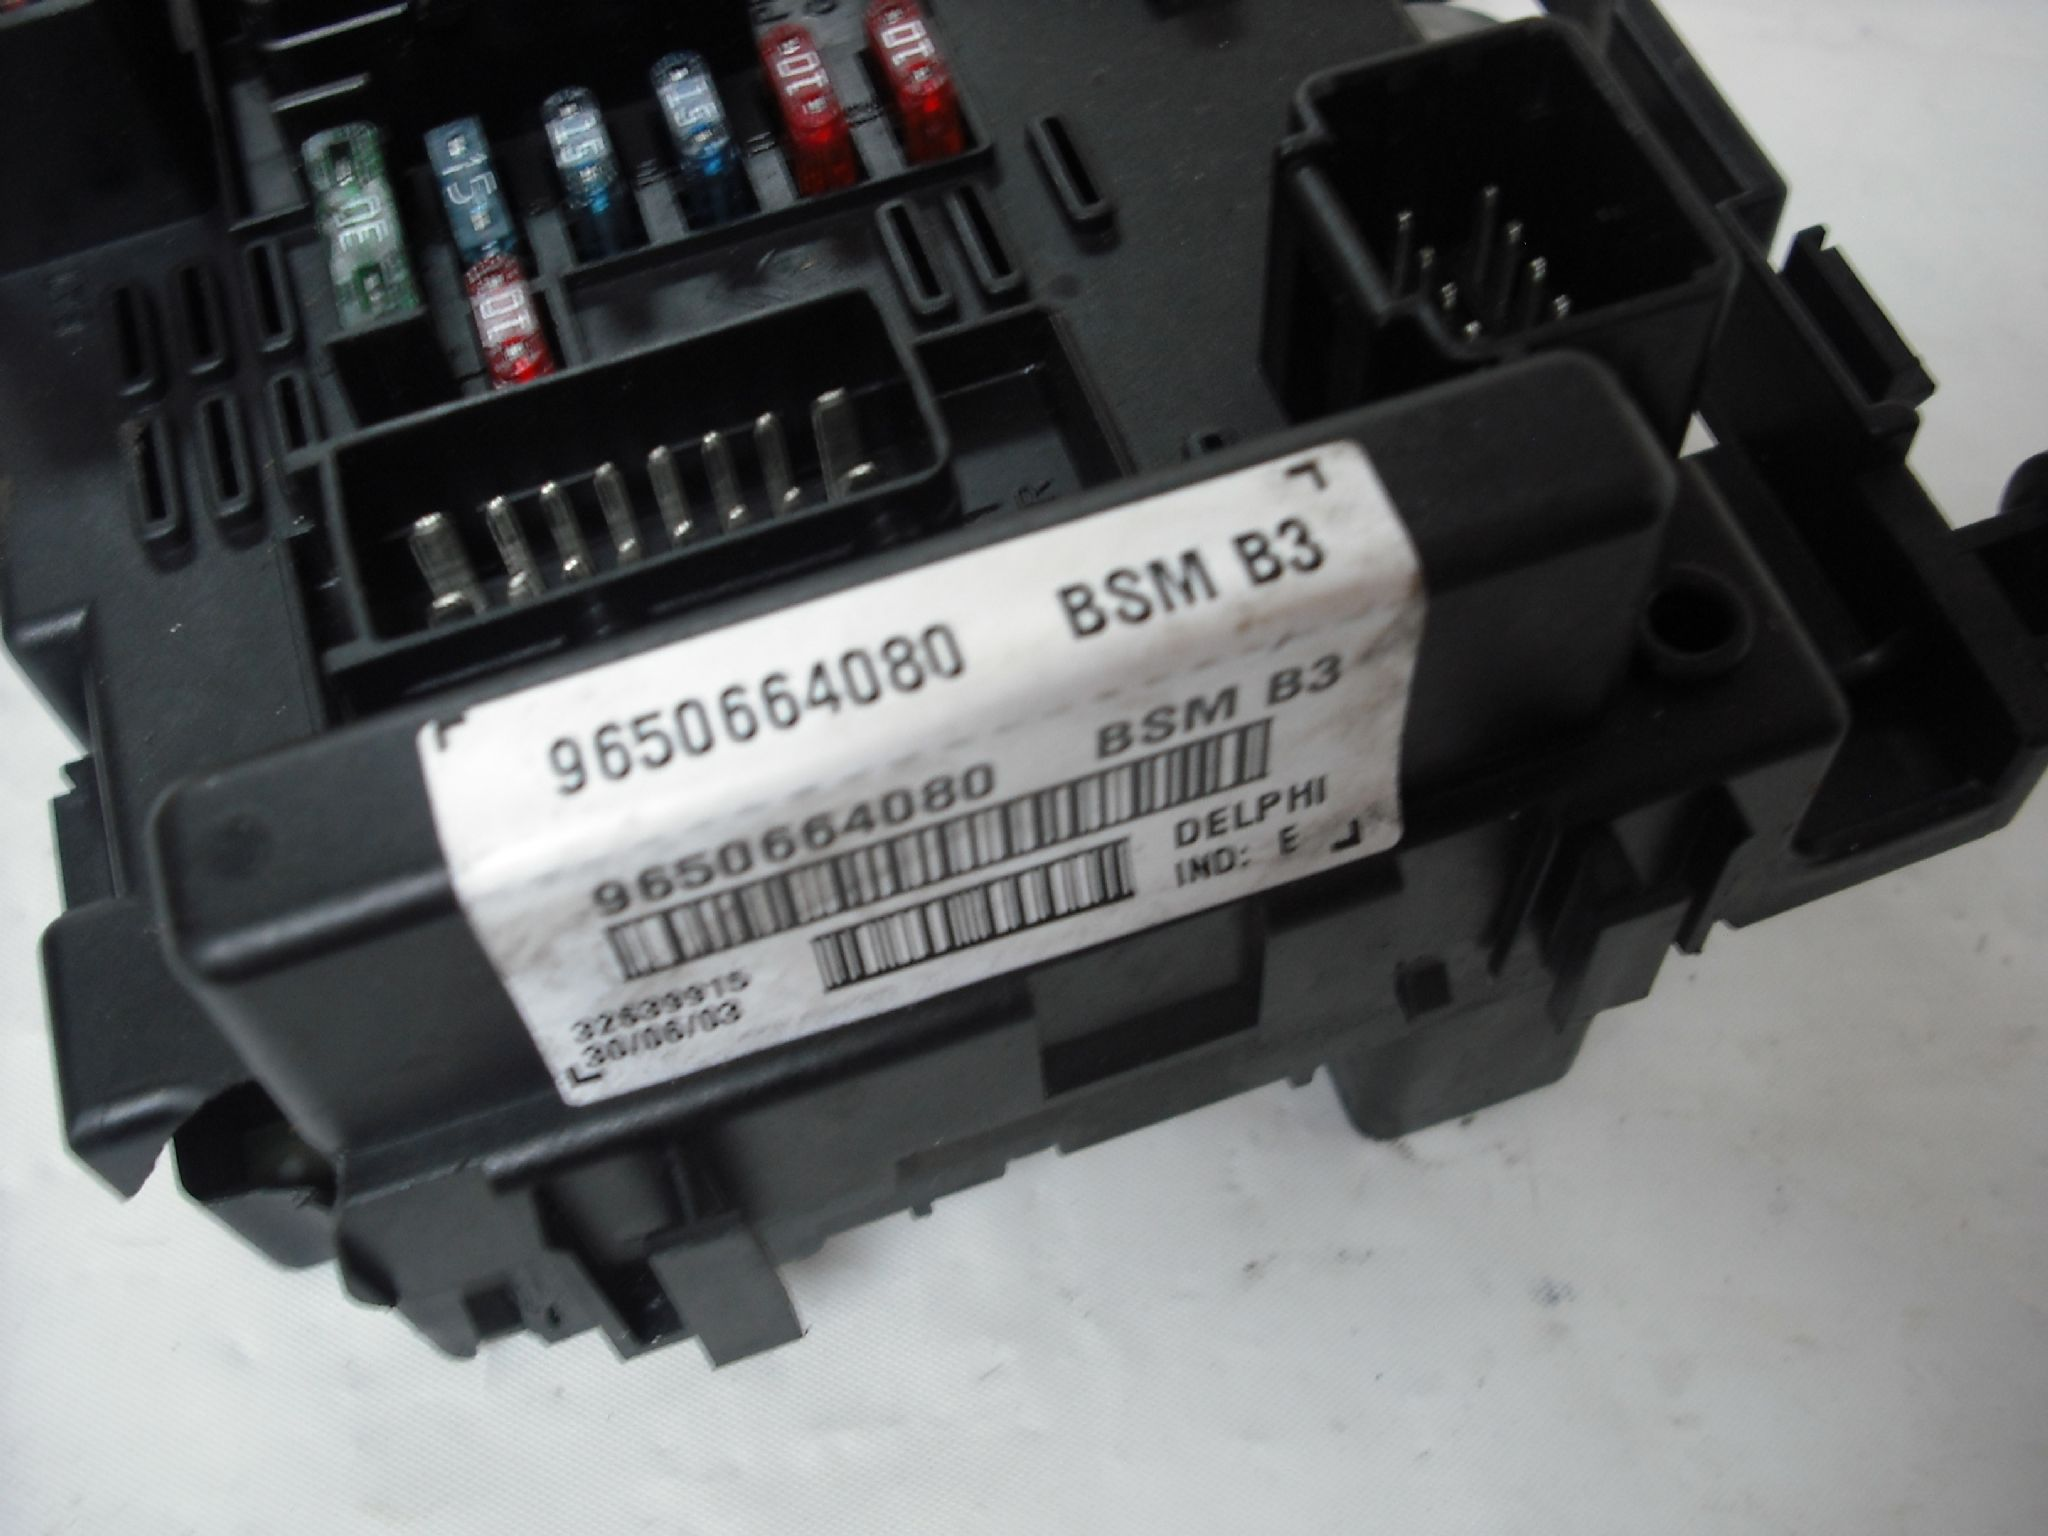 sorry out of stock ................. citroen c8 peugeot 807 fuse box controller 9650664080 bsm b3 delphi [2] 6197 p out of stock citroen c8 peugeot 807 fuse box delphi fuse box at edmiracle.co